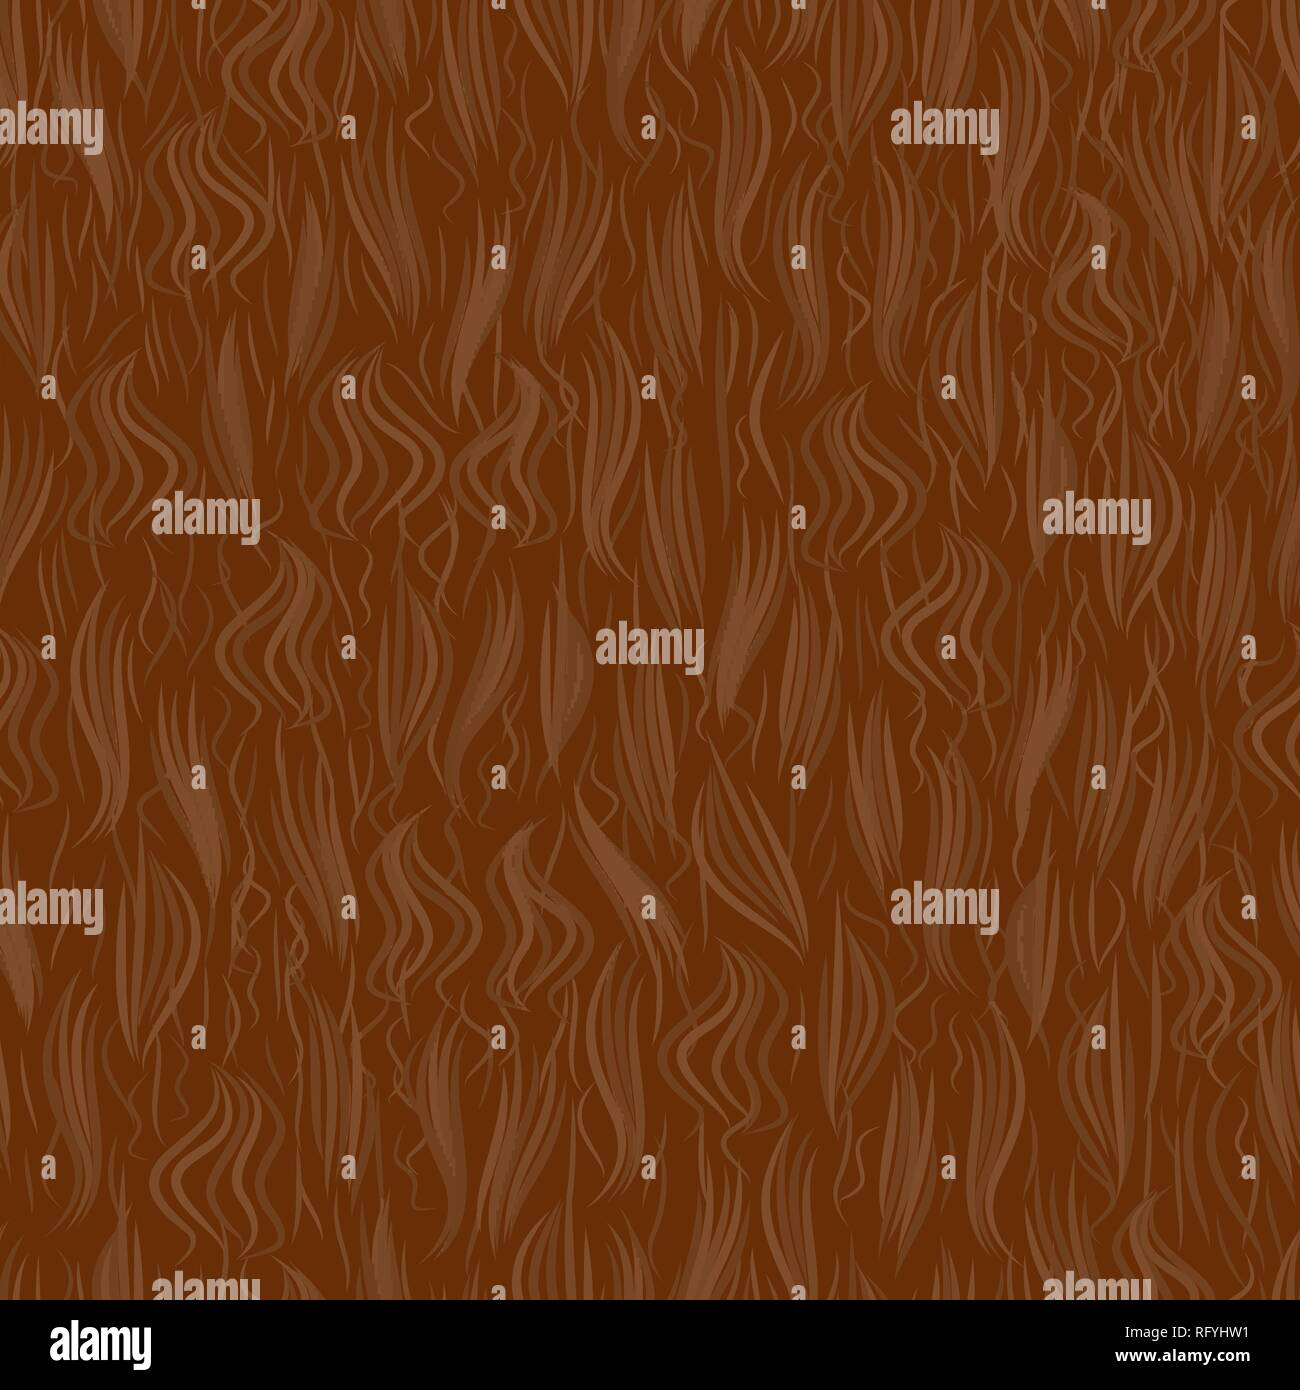 The texture of the brown fur. Seamless pattern background. Vector illustration. The skin of a wild animal. Stock Vector